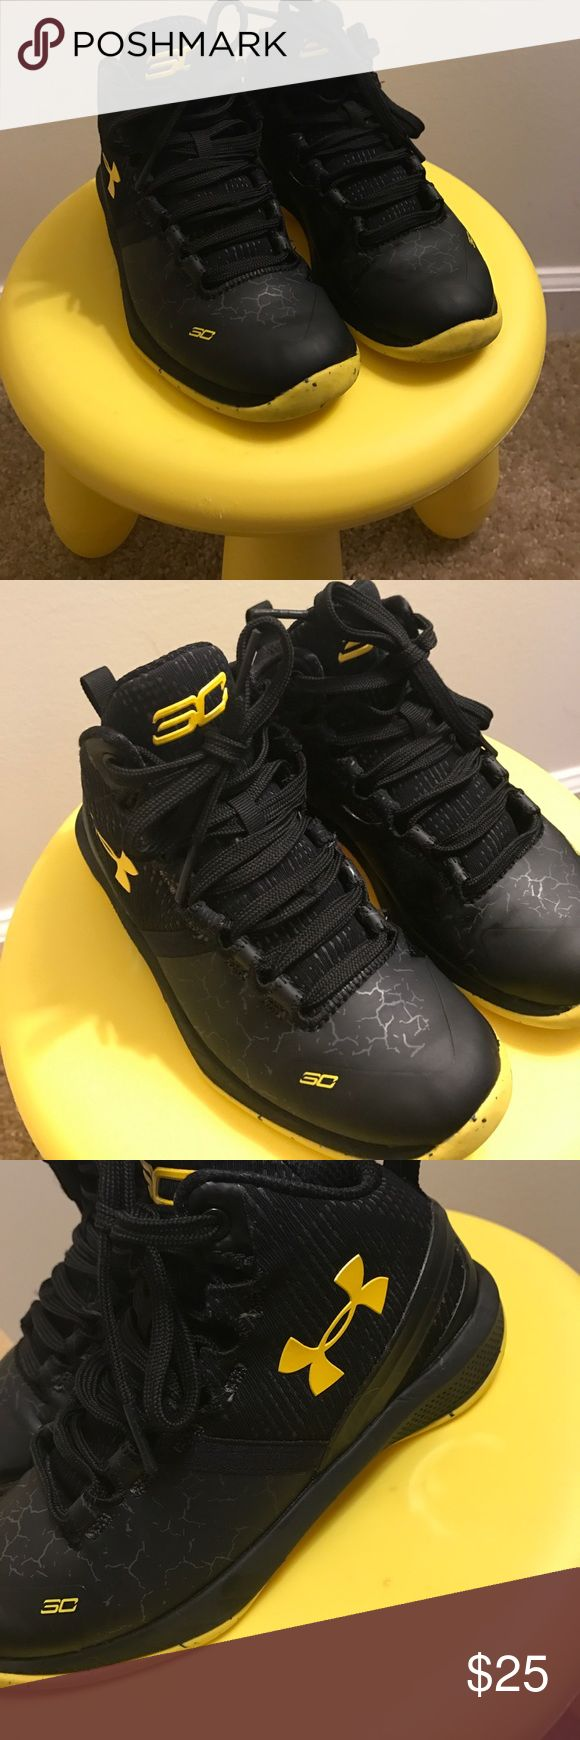 Stephen Curry Under Amour Shoes Black and yellow SC, there's a little wear (love) but it's not really noticeable! They're still in awesome condition, the traction is still perfect, they're awesome basketball shoes. Under Armour Shoes Sneakers